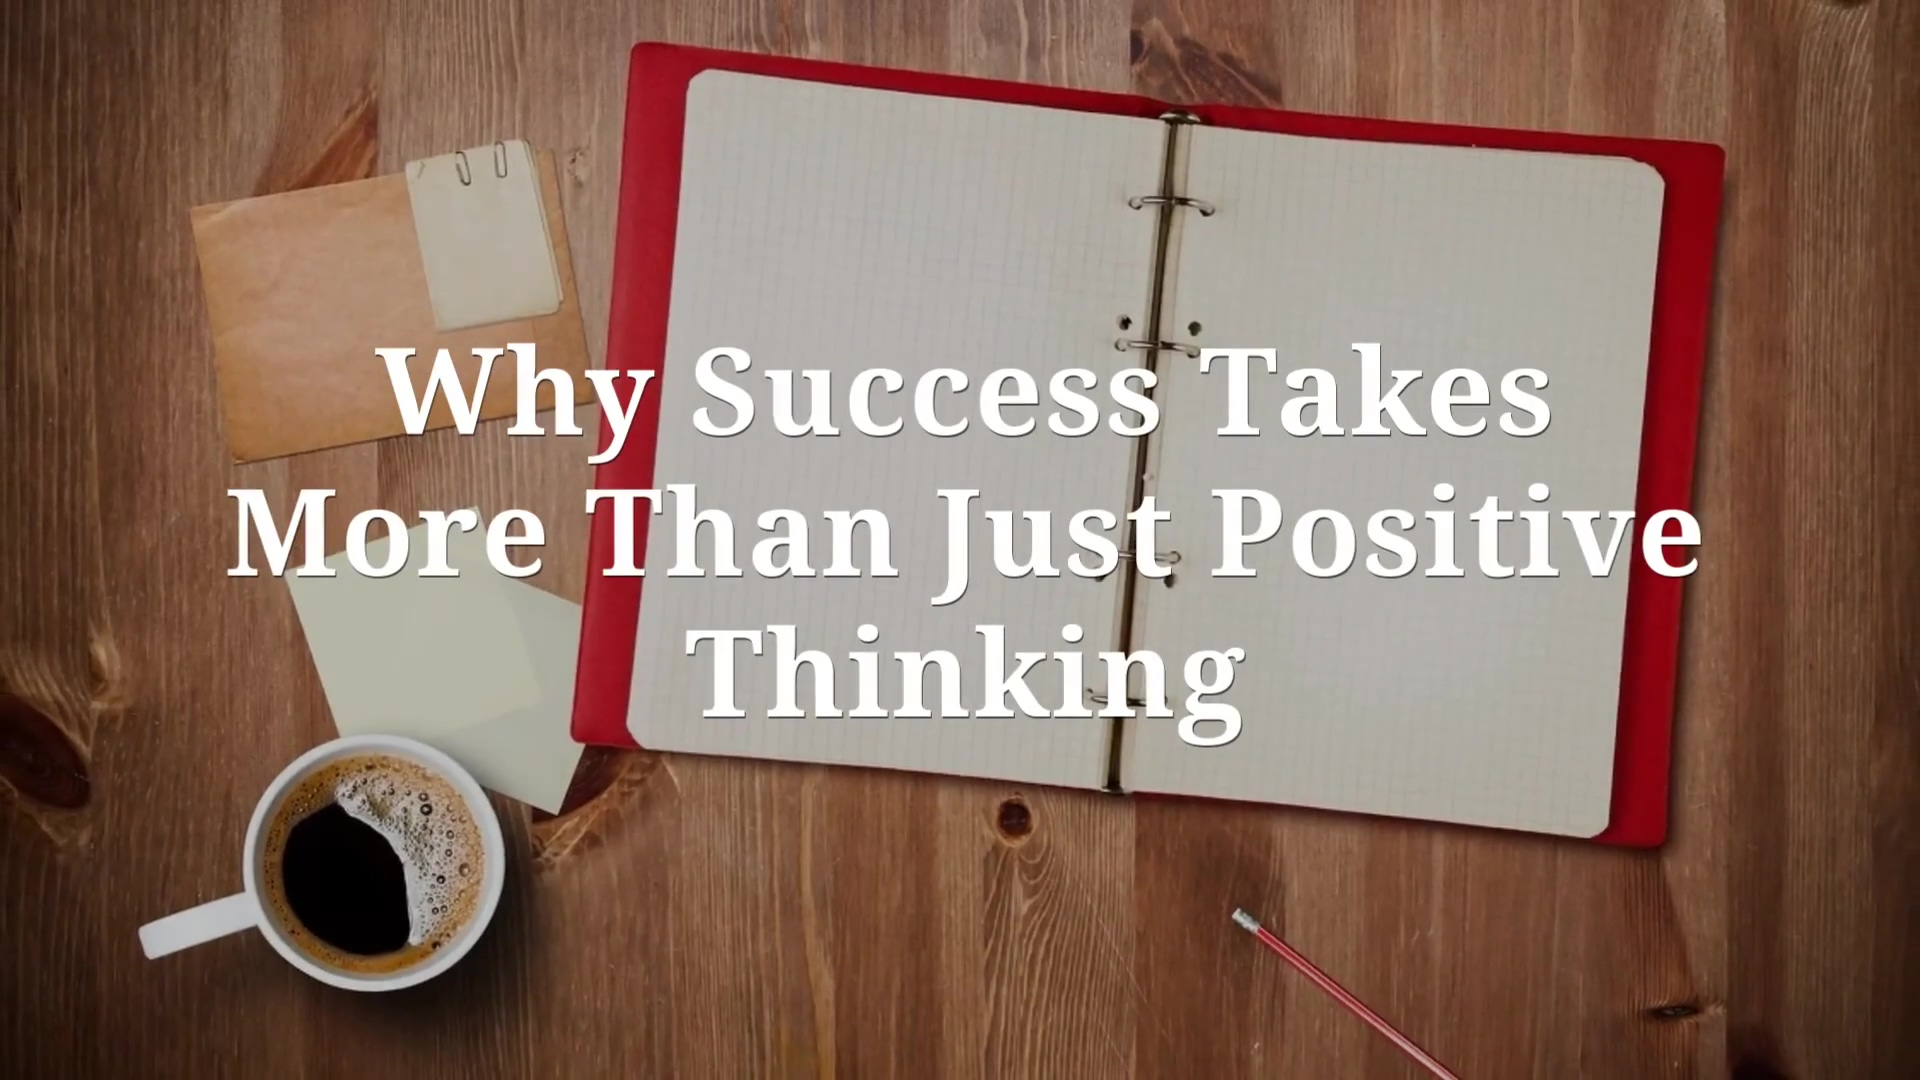 Why_Success_Takes_More_Than_Just_Positiv